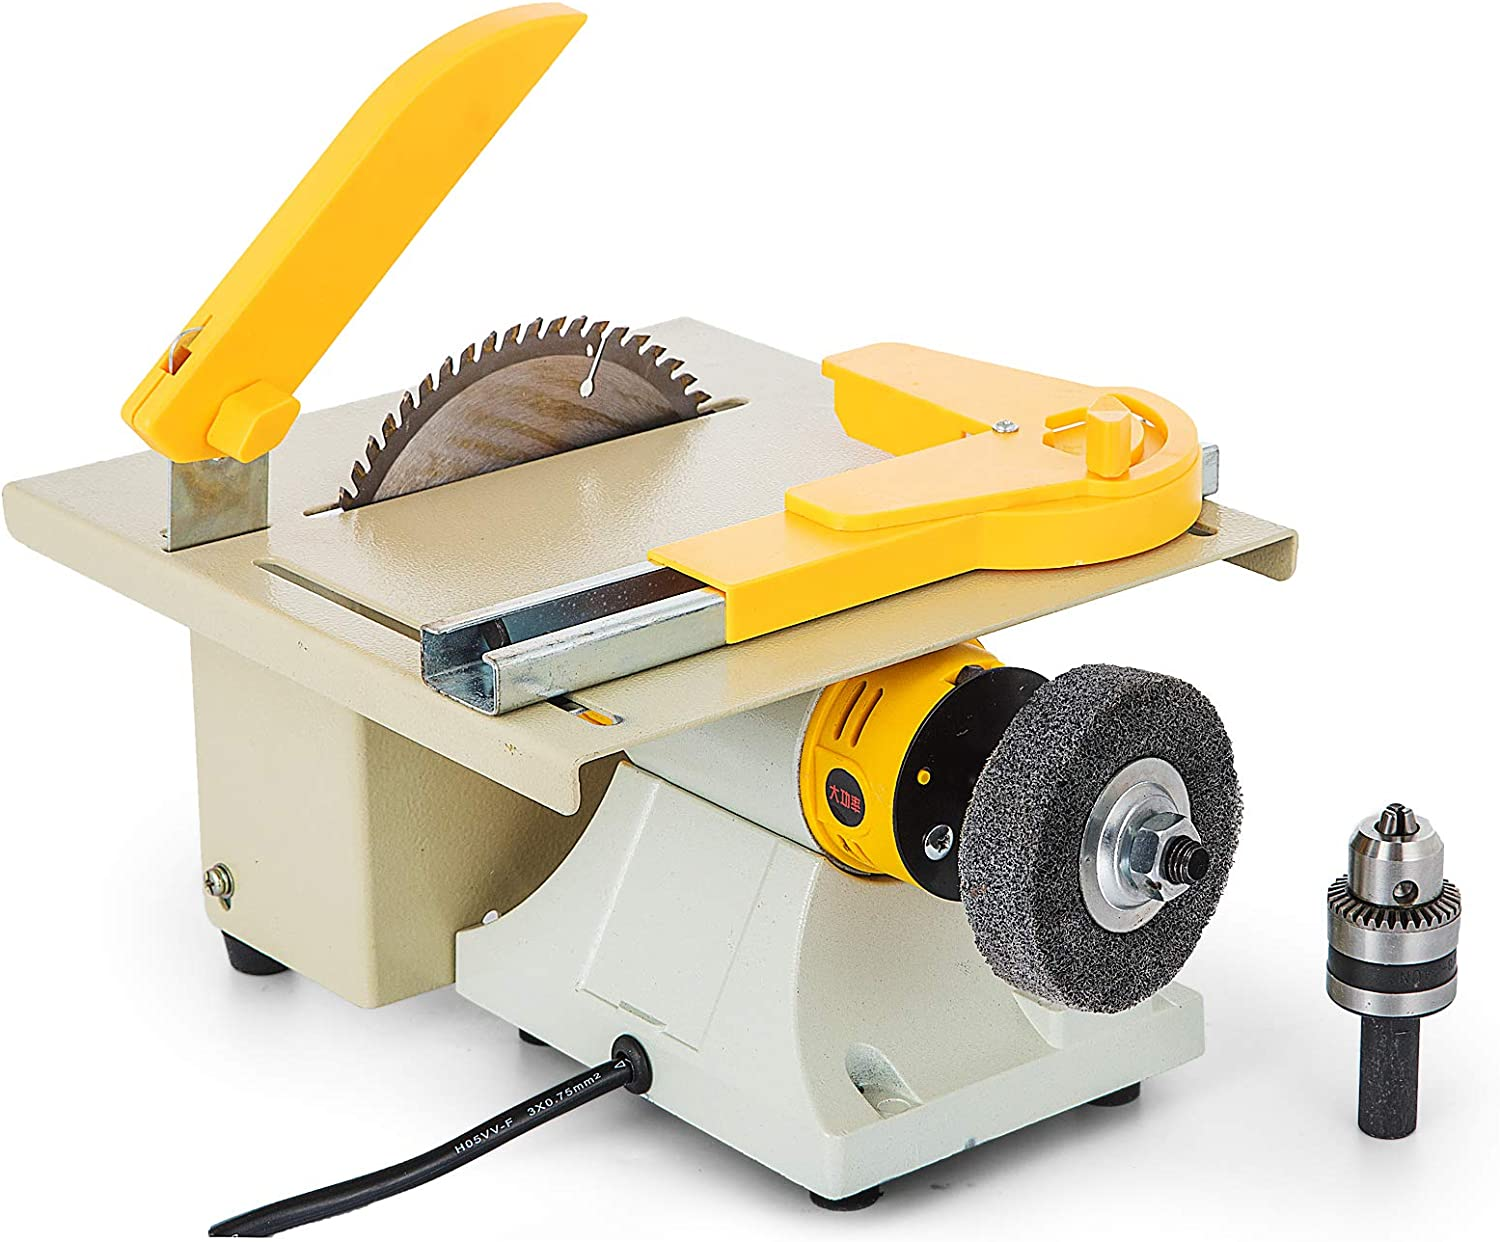 Mophorn carving machine Table Saws product image 1